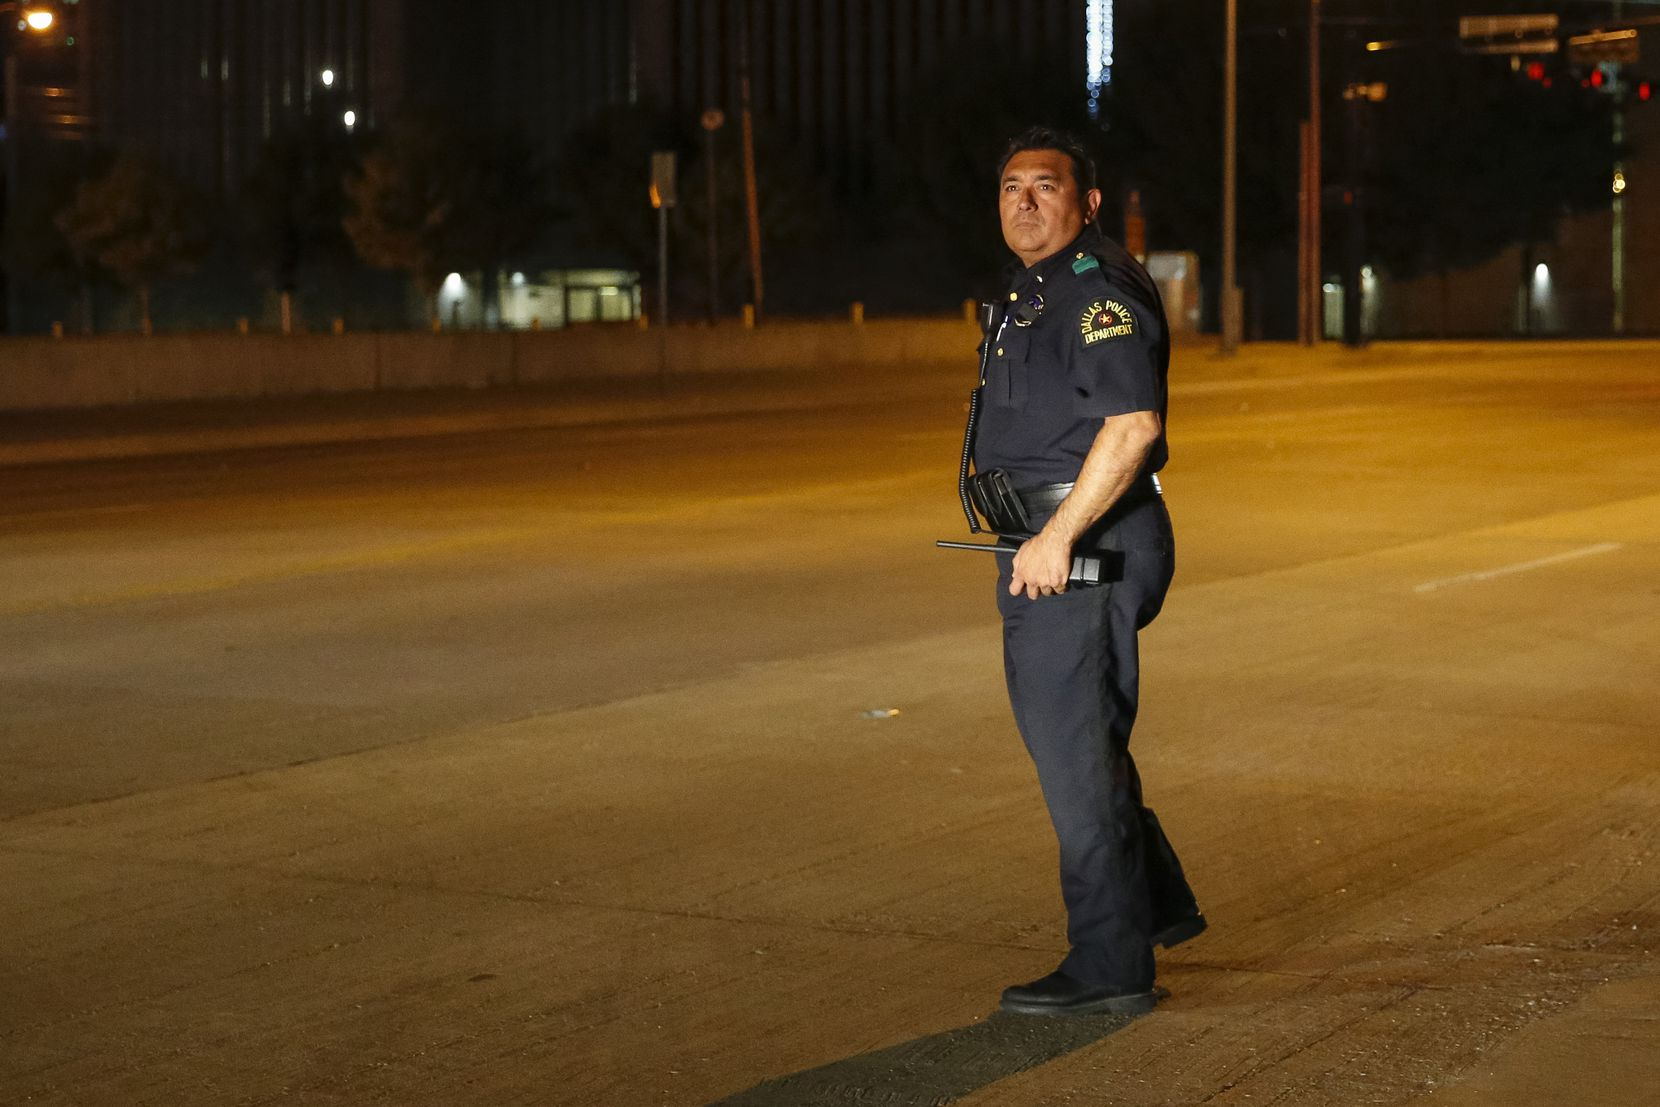 Dallas Police Deputy Chief Israel Herrera searches for bullet casings and other evidence at a shooting scene in downtown Dallas on Friday, Sept. 24, 2021.